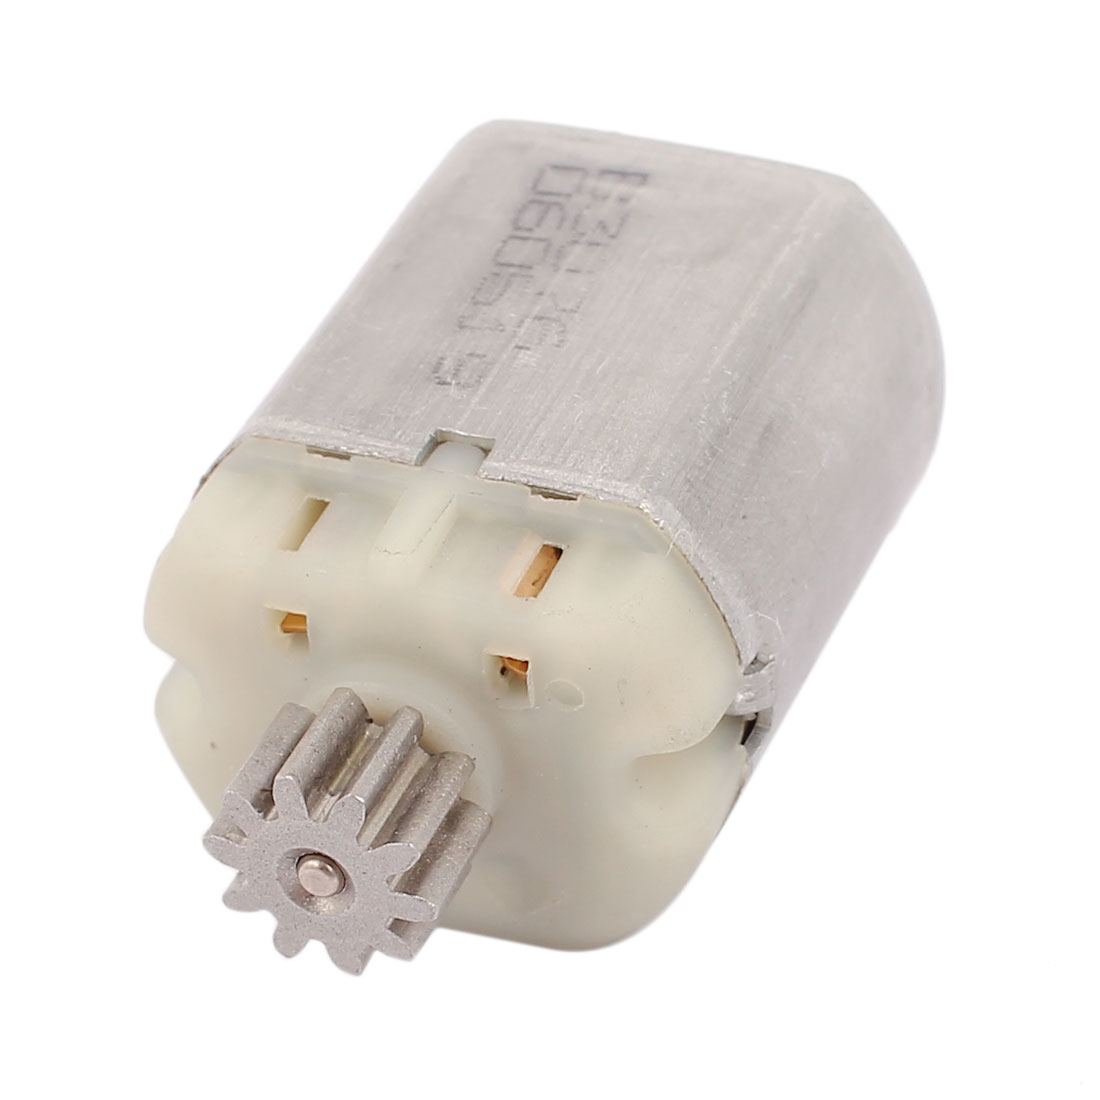 DC 6-12V 6500-13000RPM Rotation Speed 10 Teeth Geared Shaft Motor Replacement